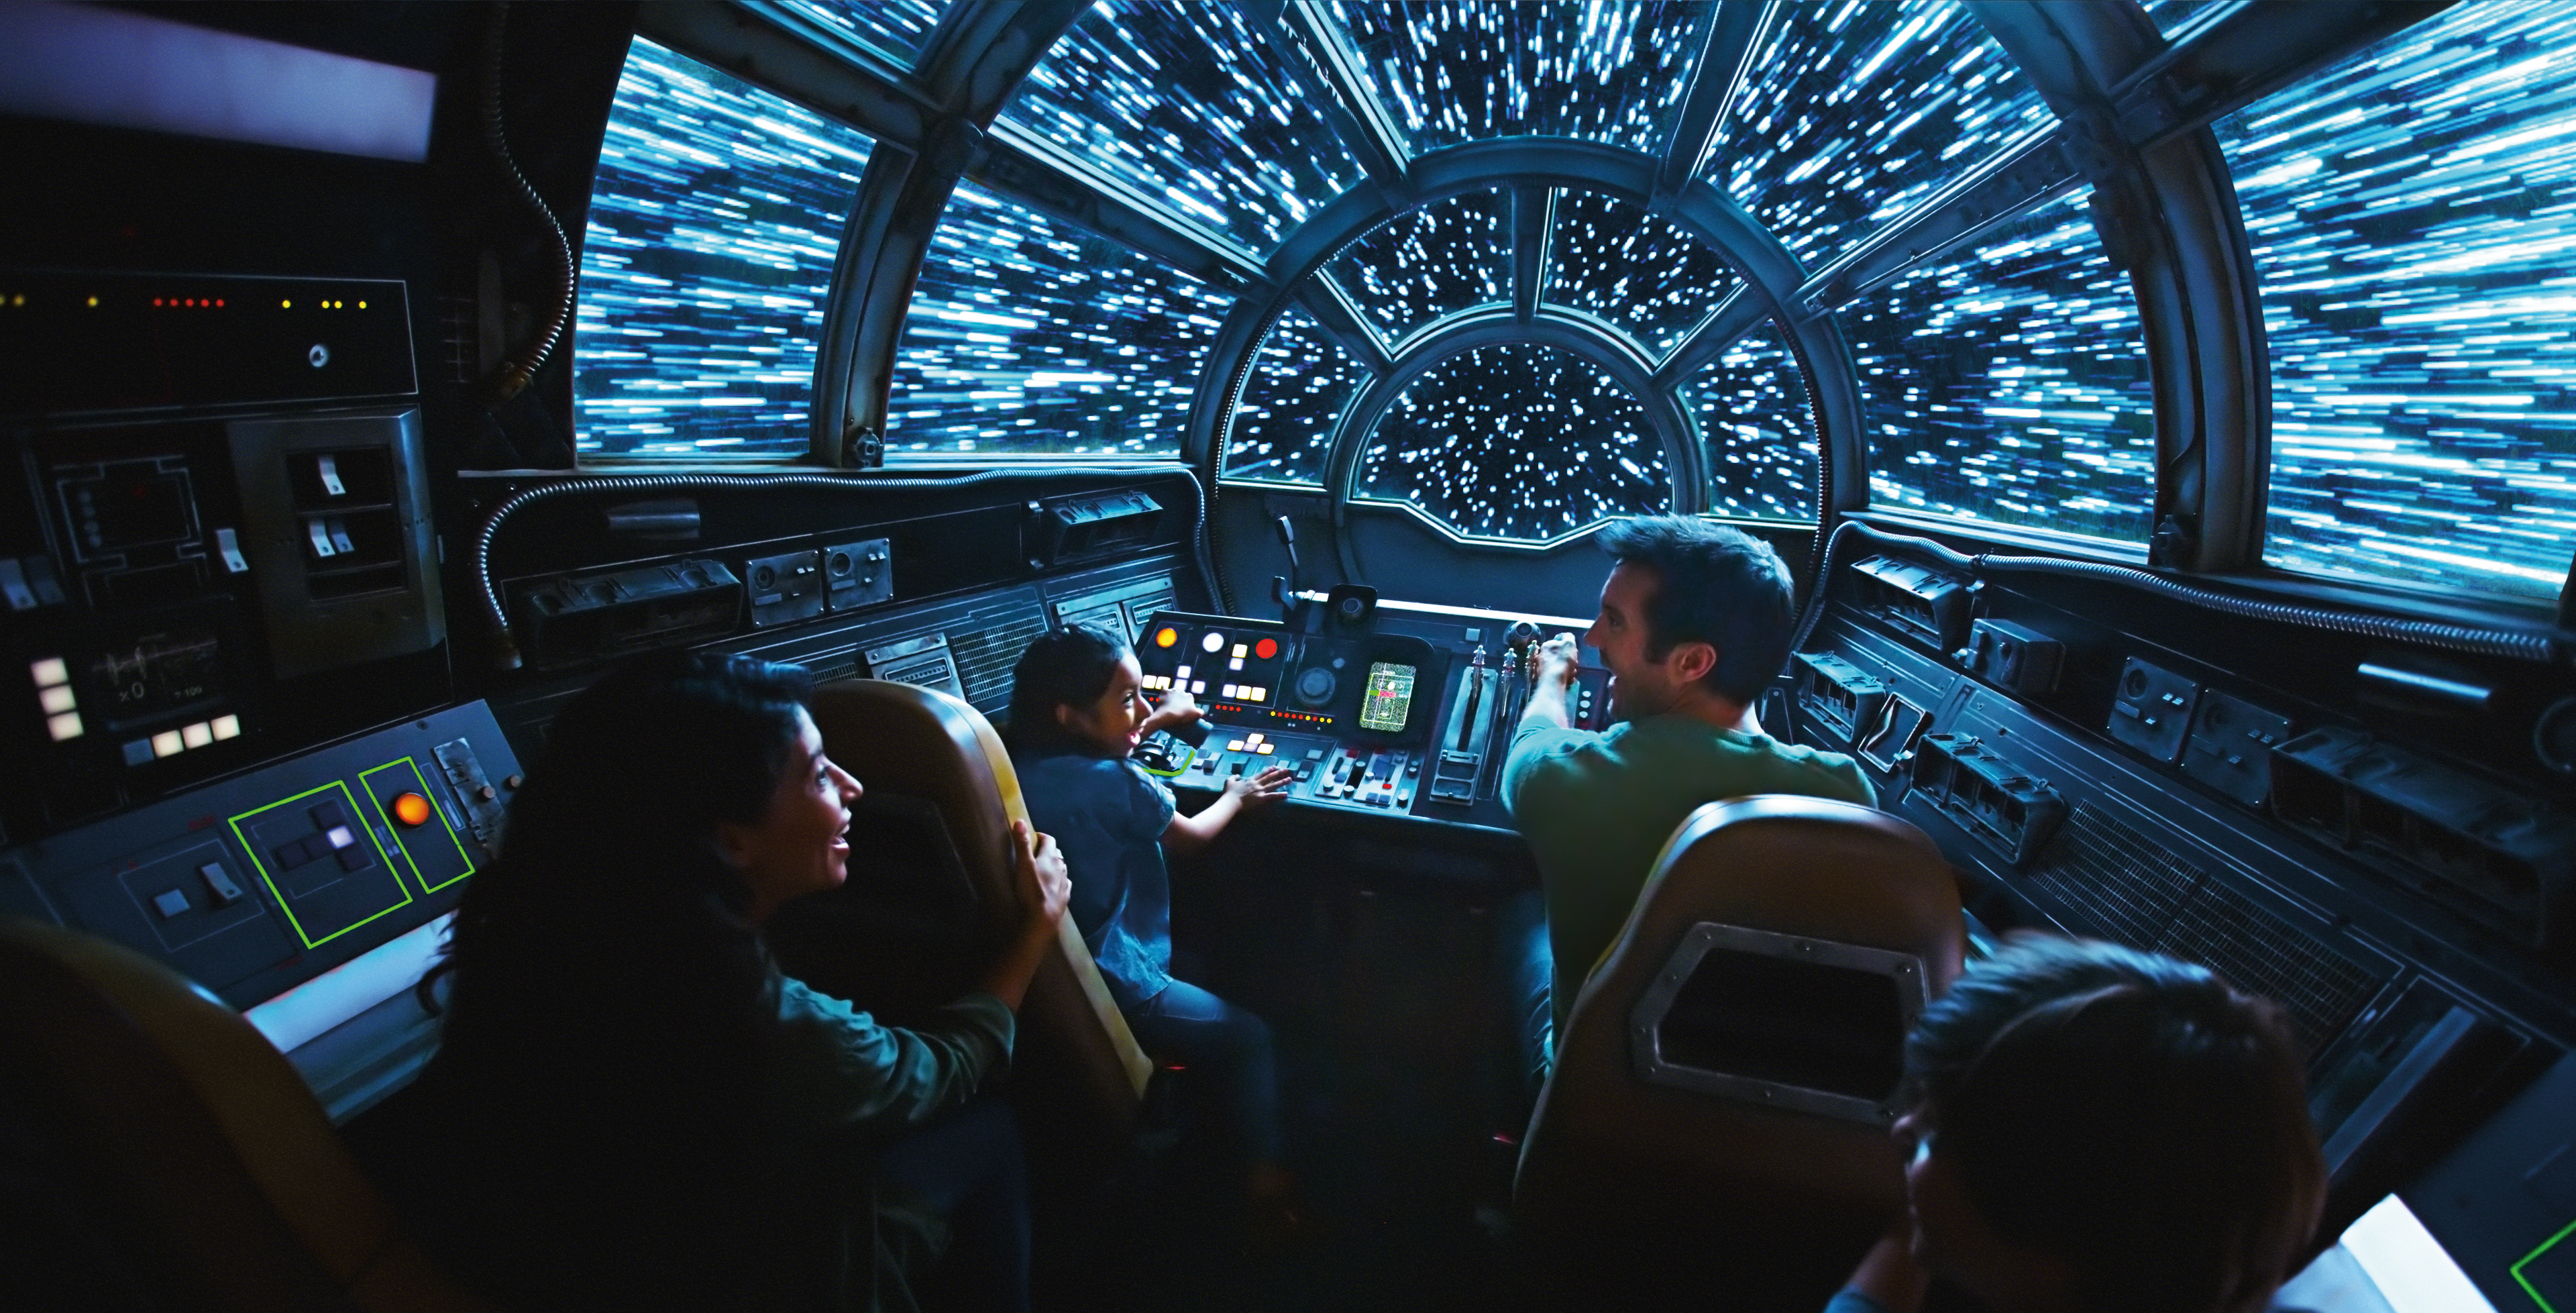 Star Wars Land Planning Disney World|Star Wars Land Planning Disneyland|Inside Millennium Falcon